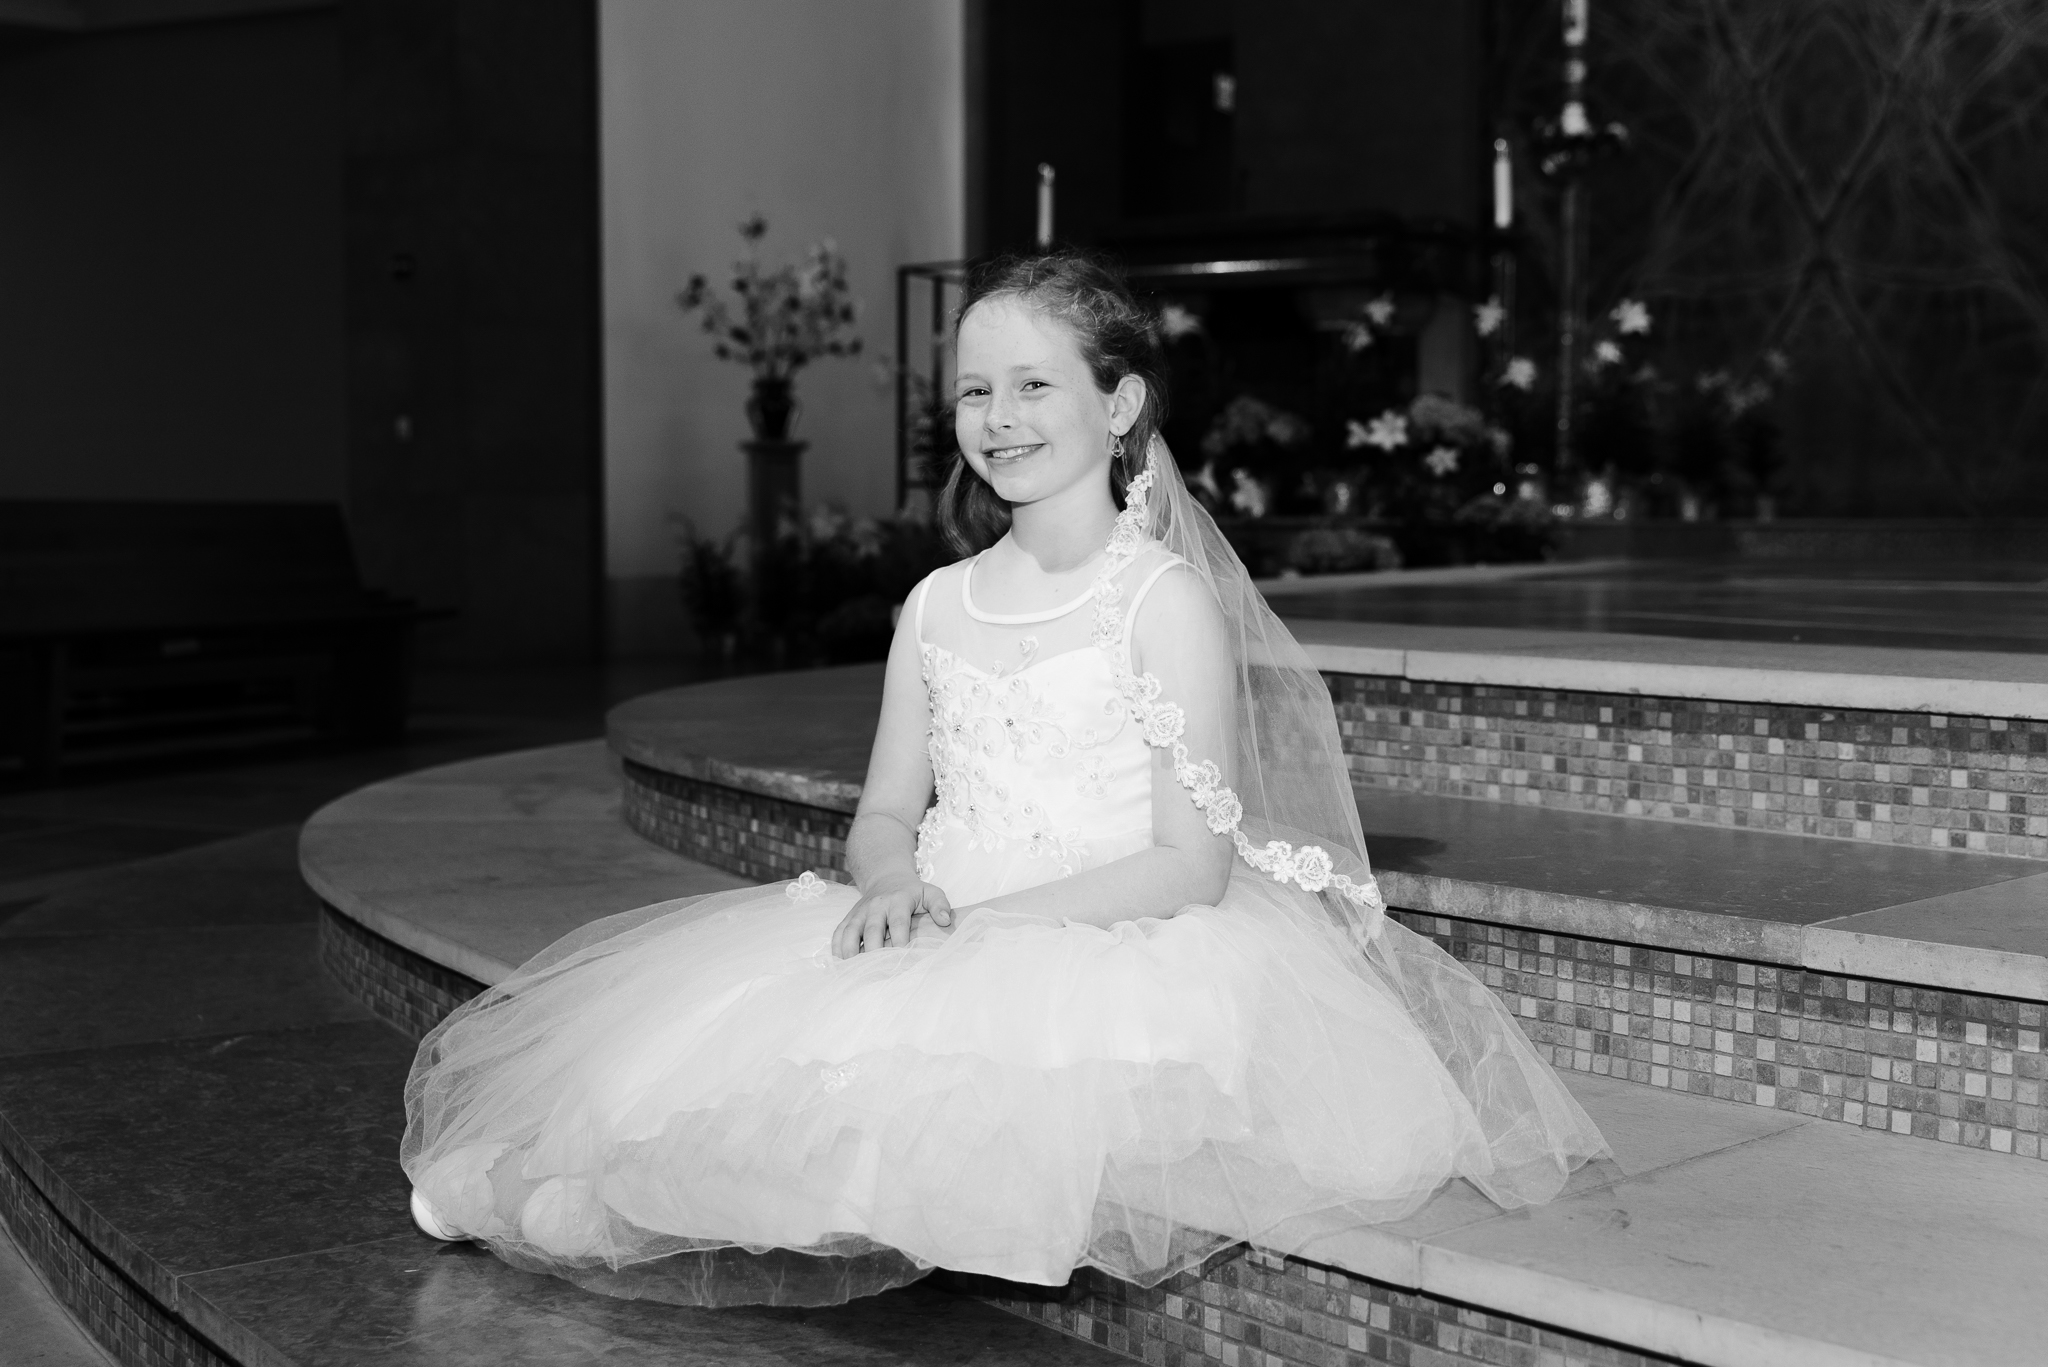 First Communion Catholic Photographer_First Communion Austin Texas_Round Rock Photographer_Emily Ingalls Photography_Austin Photographer_Pflugerville Photographer_Georgetown Photographer-6.jpg